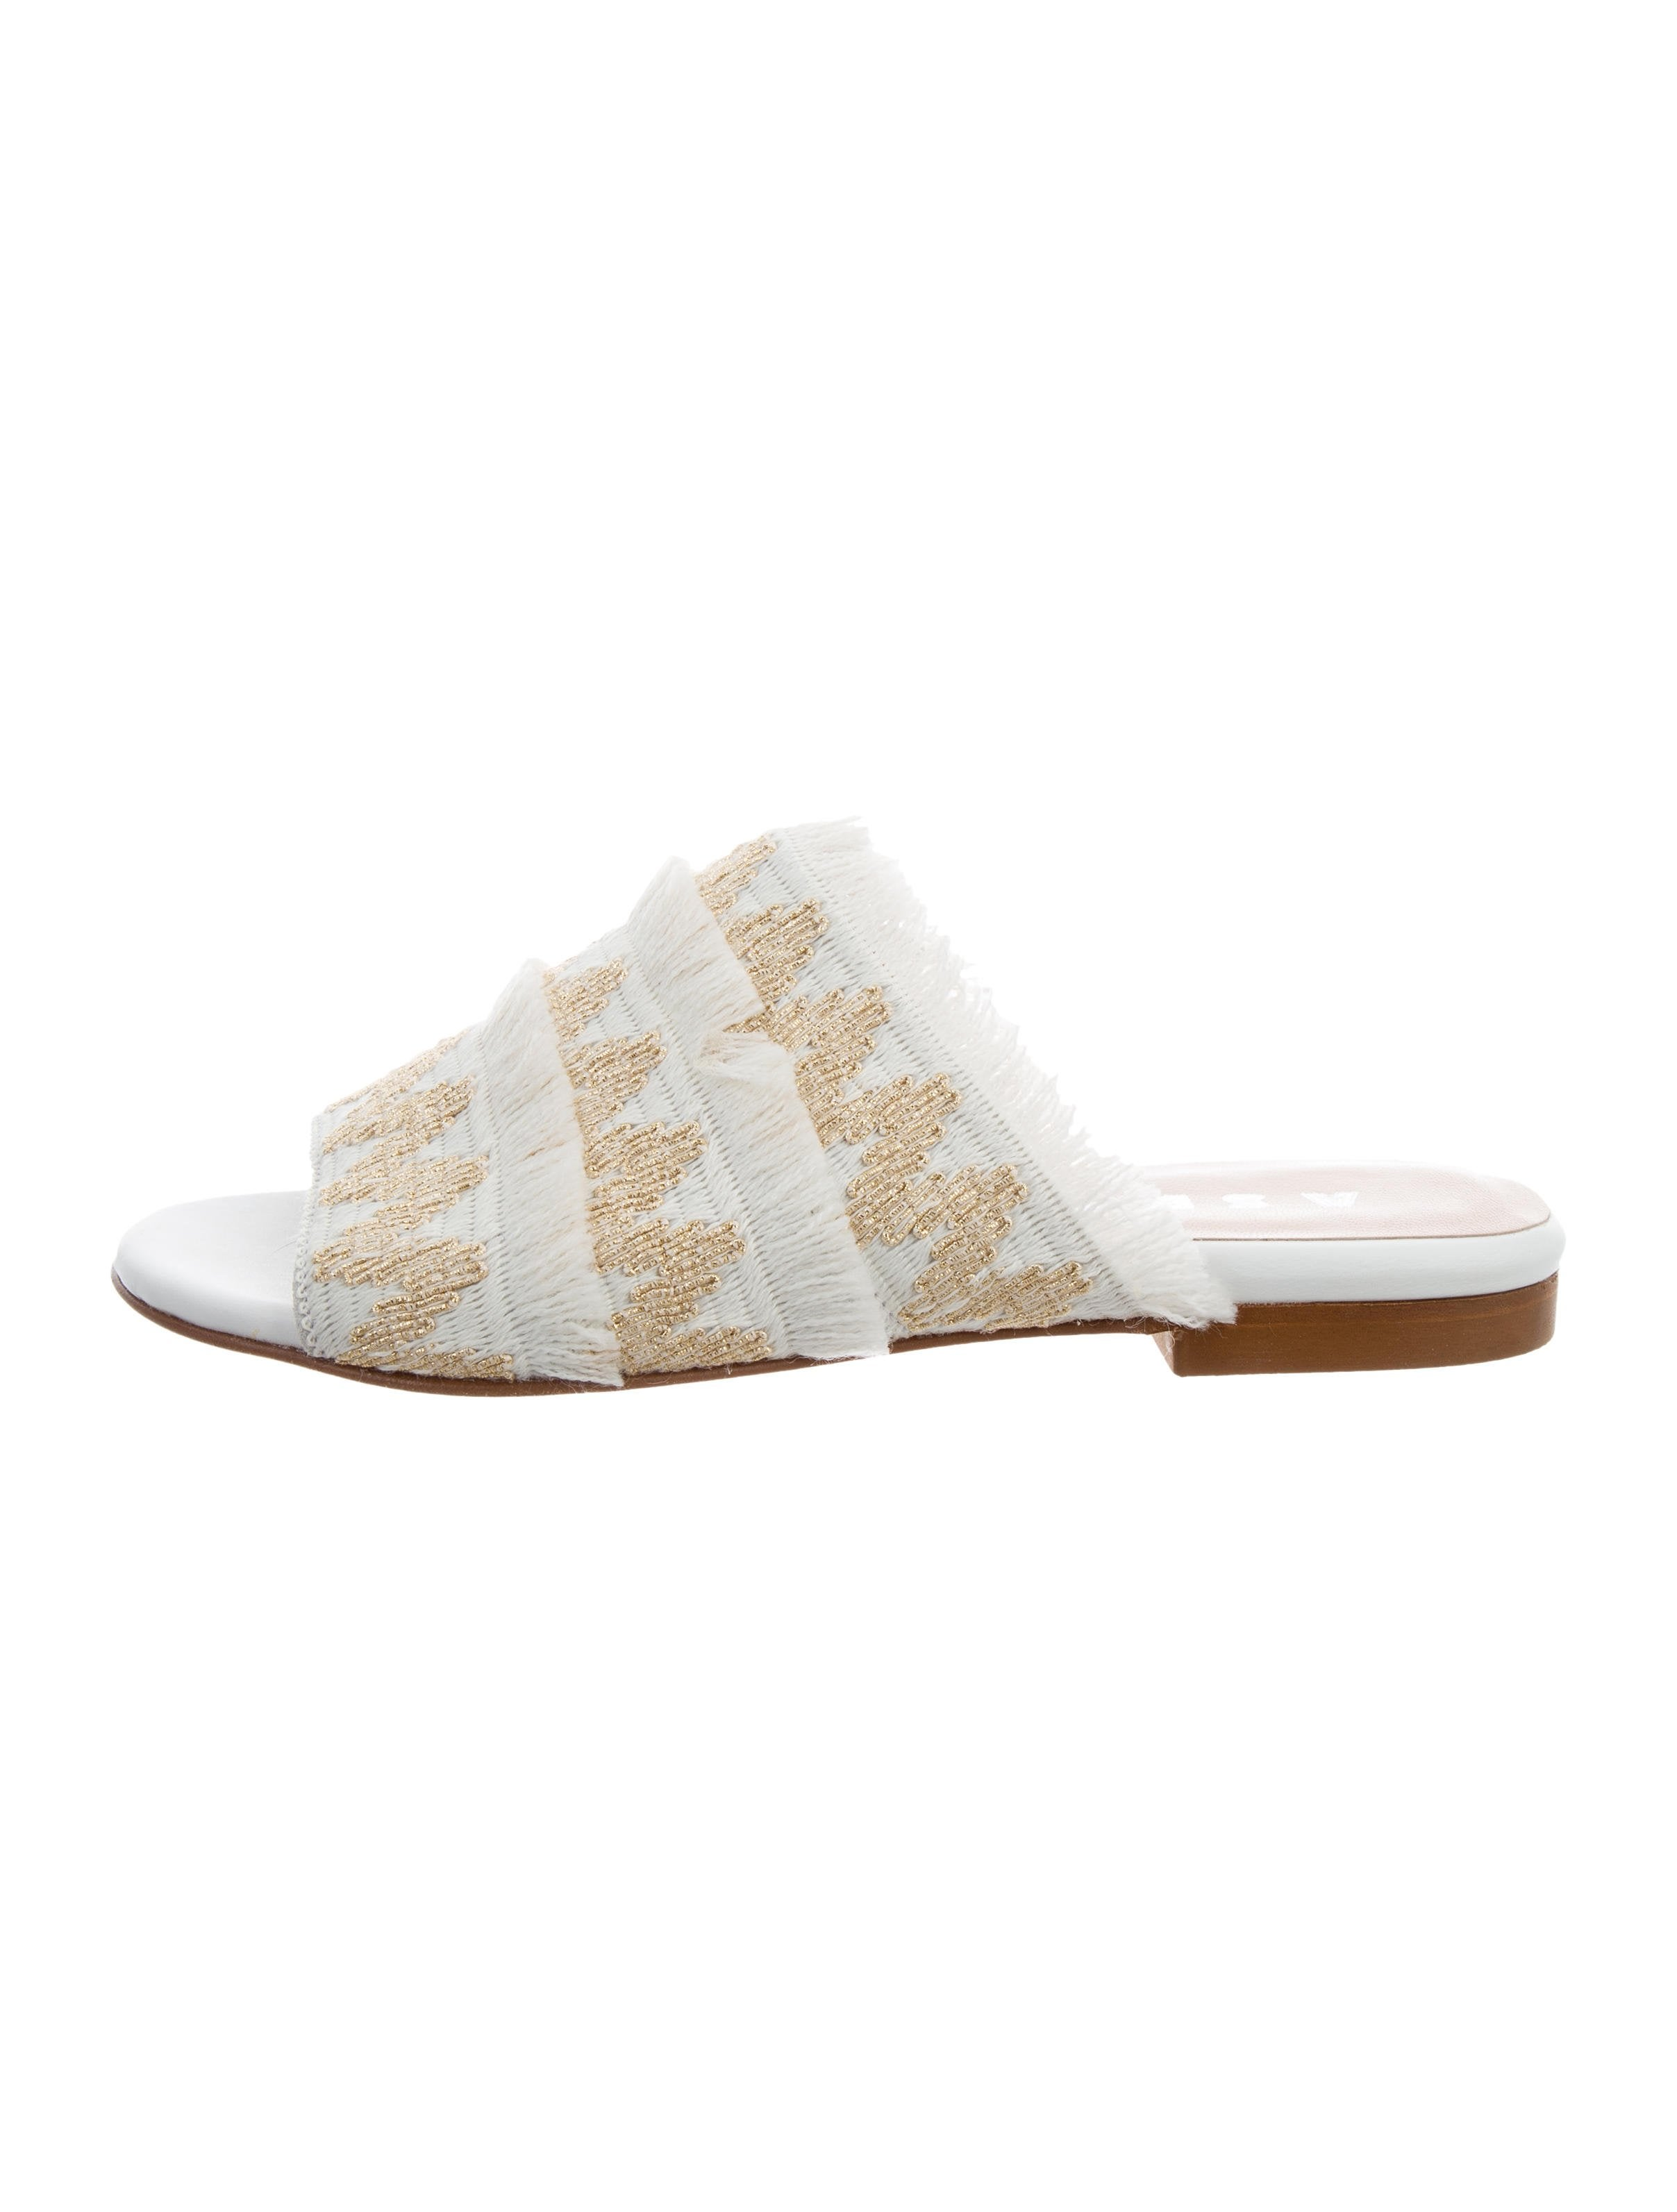 sale big sale pre order cheap price Aska Embroidered Slide Sandals w/ Tags UCG11f